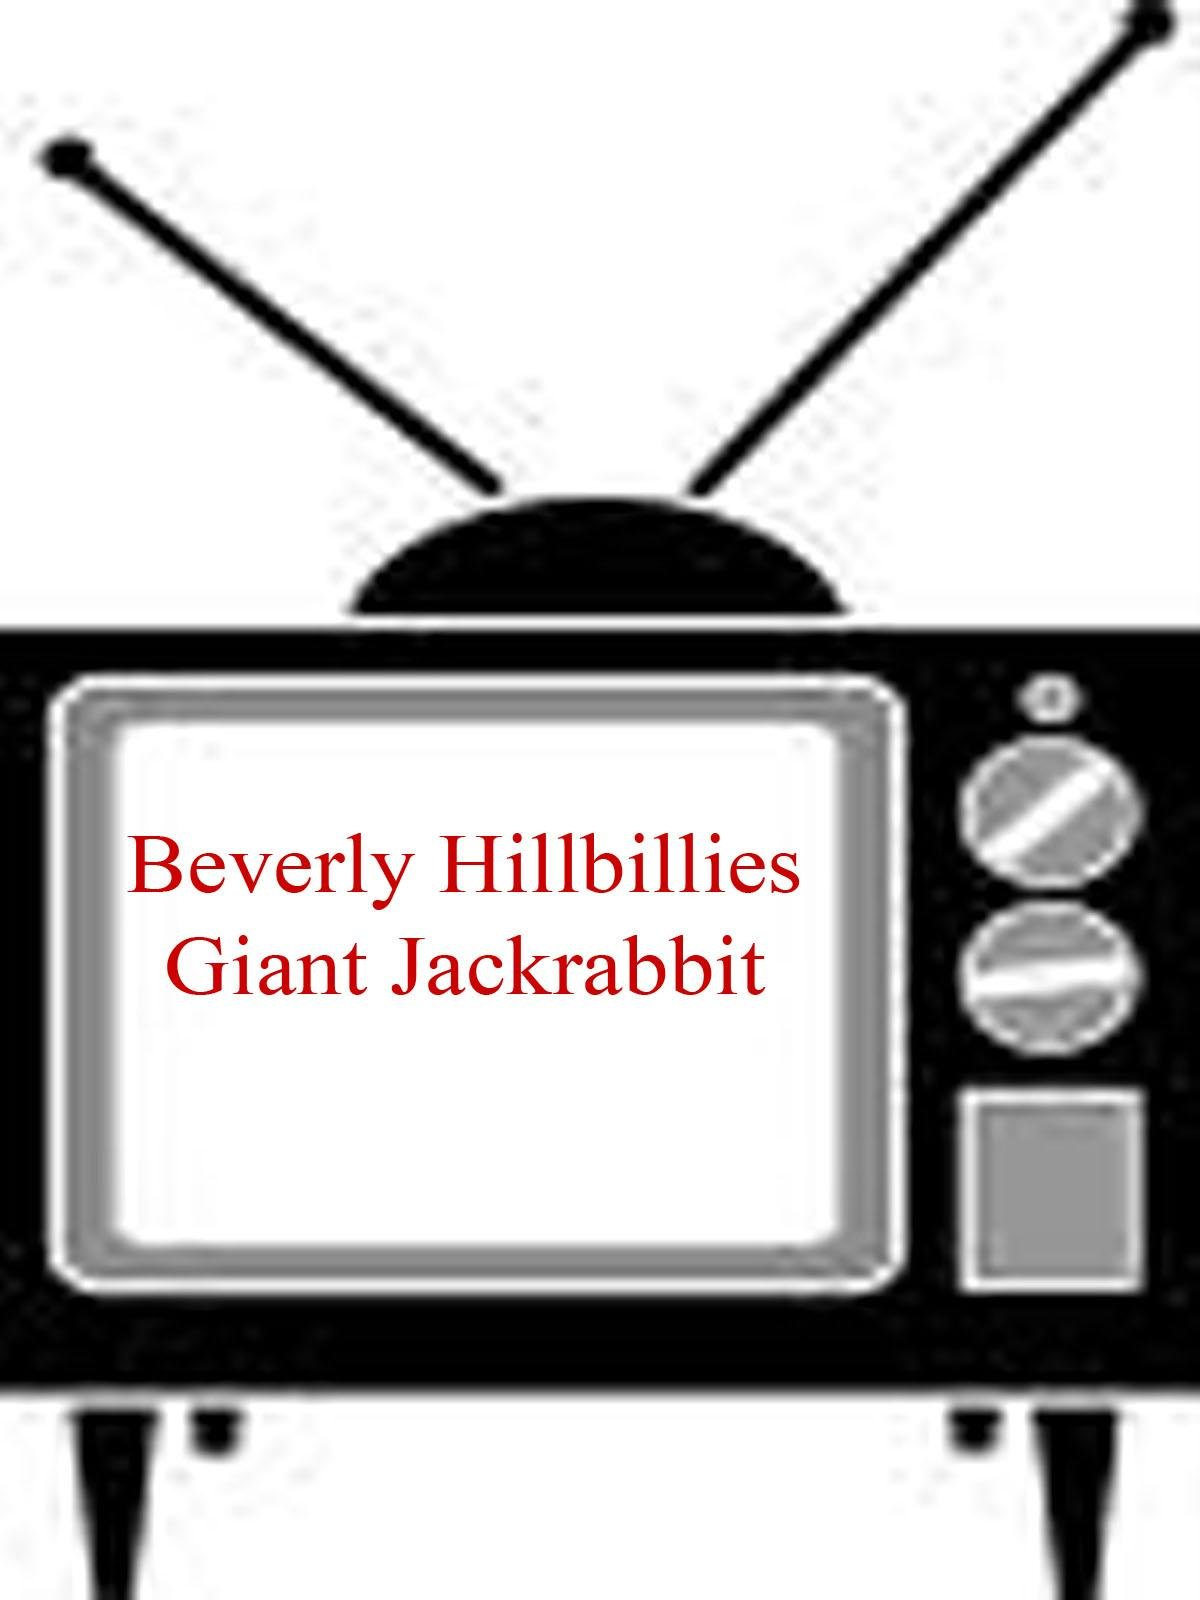 1200x1600 Giant Jackrabbit